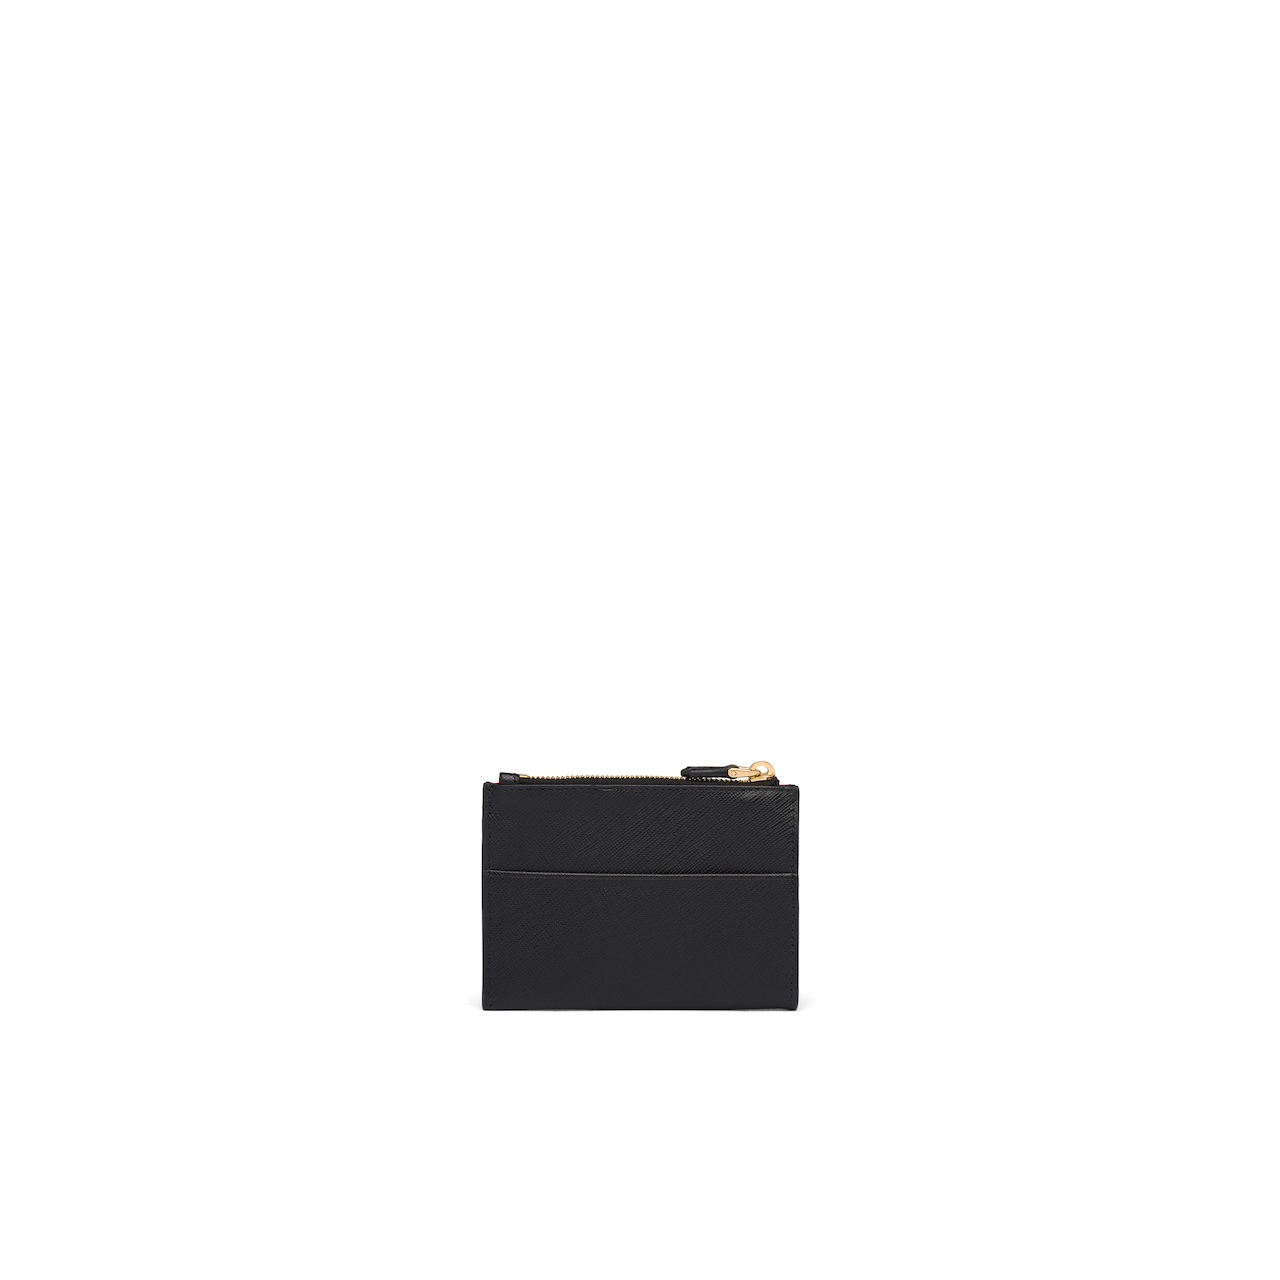 Saffiano leather credit card holder 3